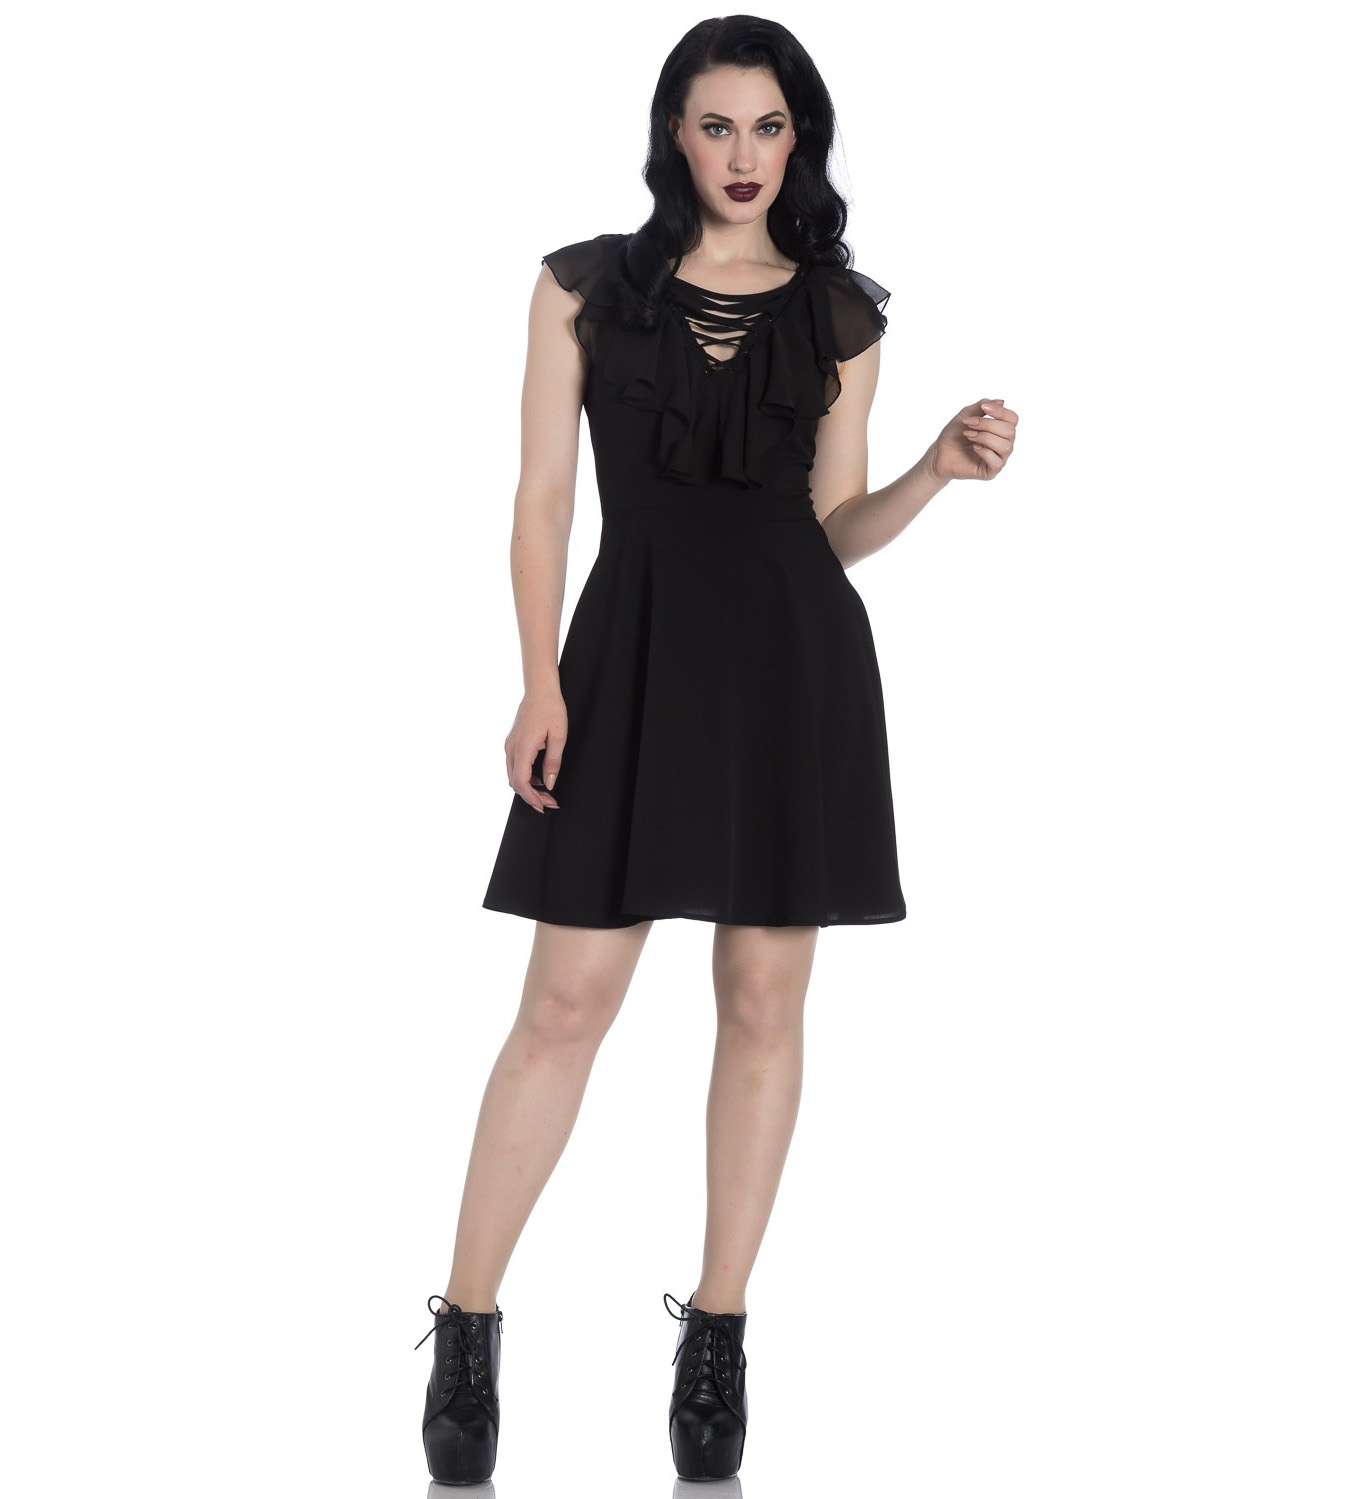 Hell-Bunny-Floaty-Lace-Up-Goth-Witch-Punk-Mini-Dress-ONYX-Black-All-Sizes thumbnail 27